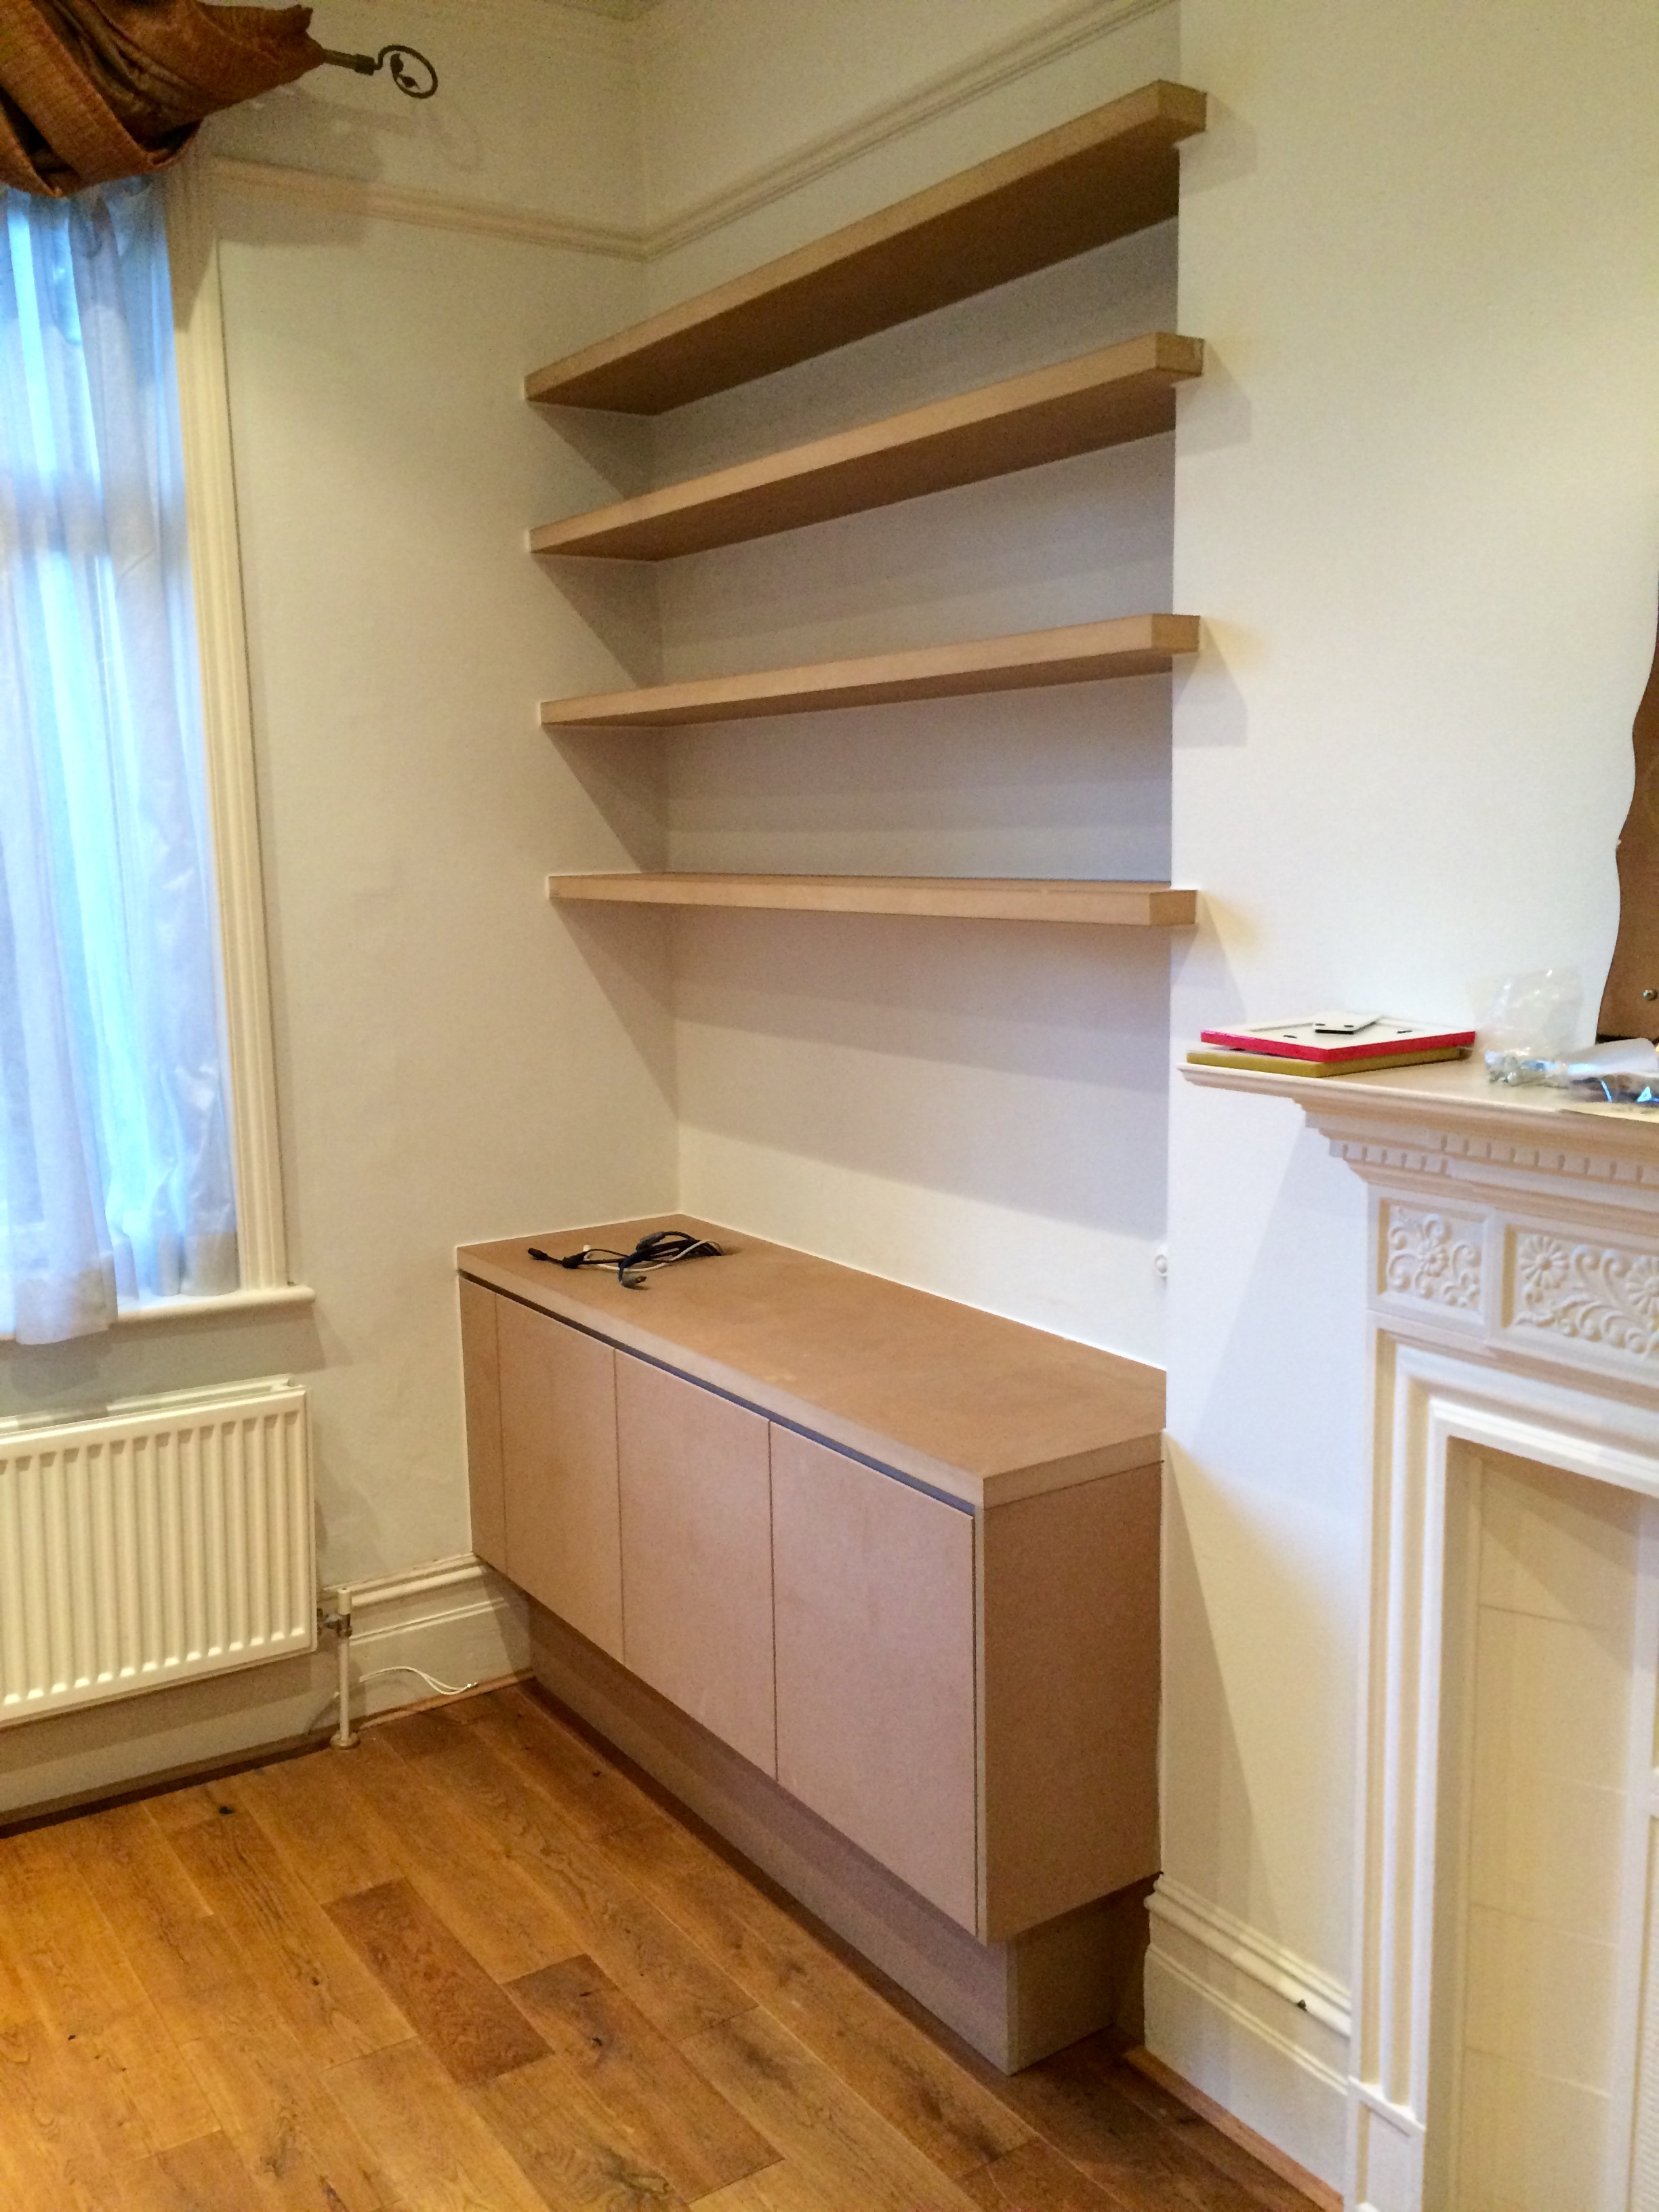 Minimalist Shelves - Minimal in style, the fitted cabinet and shelves offer a pleasing and uncluttered installation. Shown here, they await decoration.